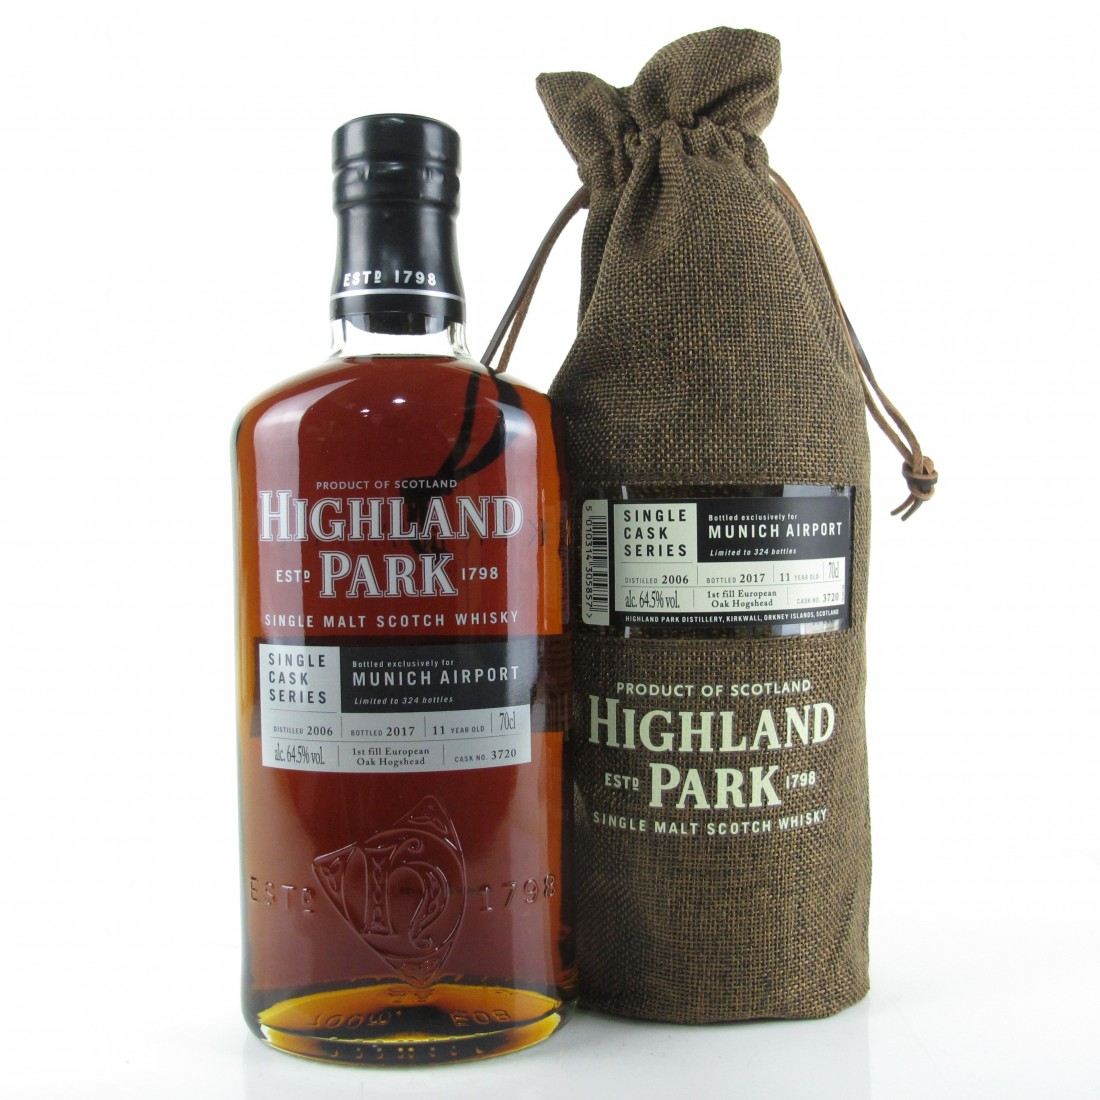 Highland Park 2006 Single Cask 11 Year Old / Munich Airport